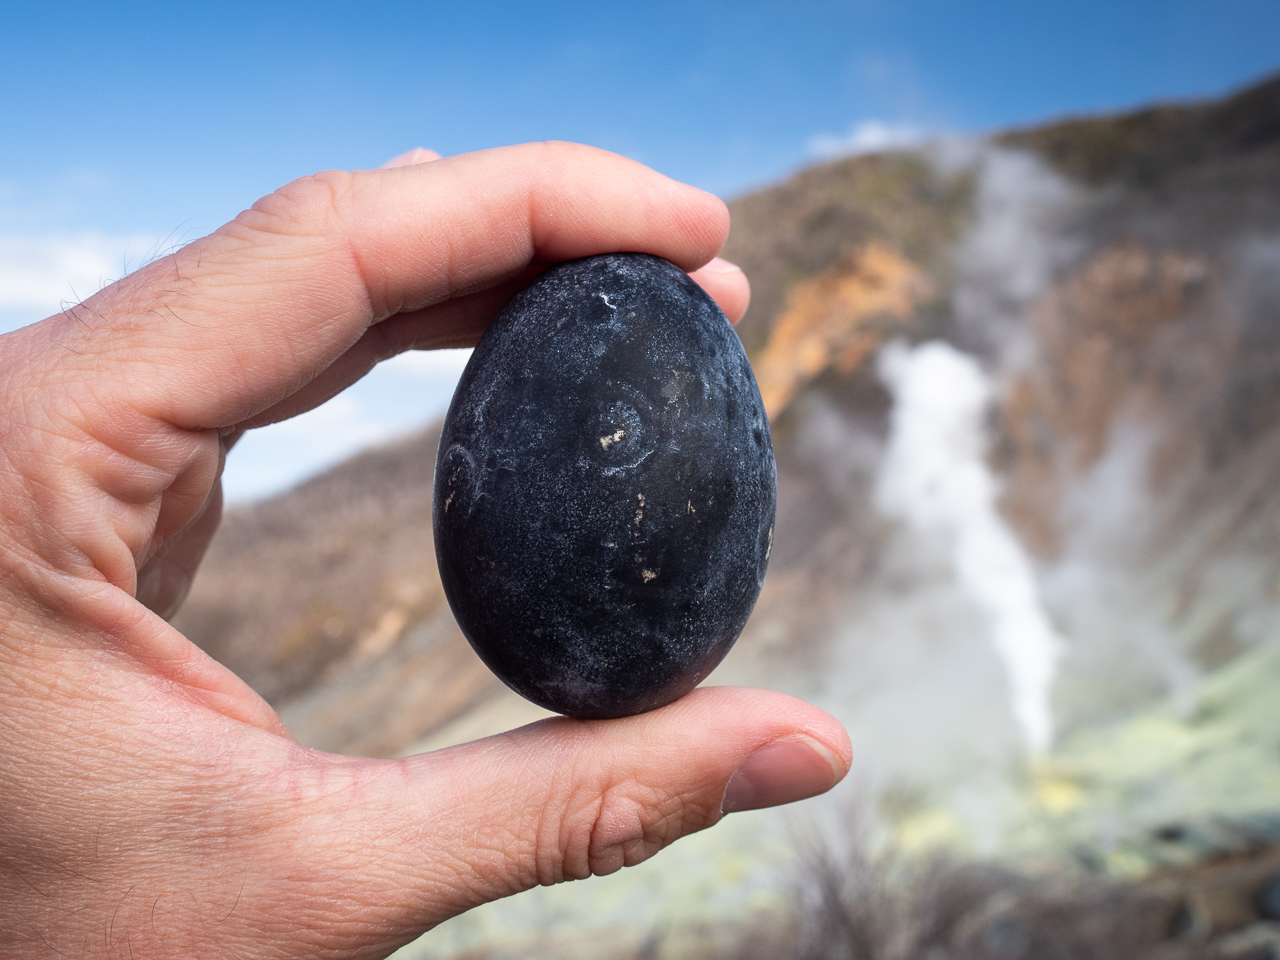 An Owakudani egg - boiled in geothermal hot spings on the side of Mount Hakone, an active volcano in Hakone, Japan. The water turns the eggshell jet black.